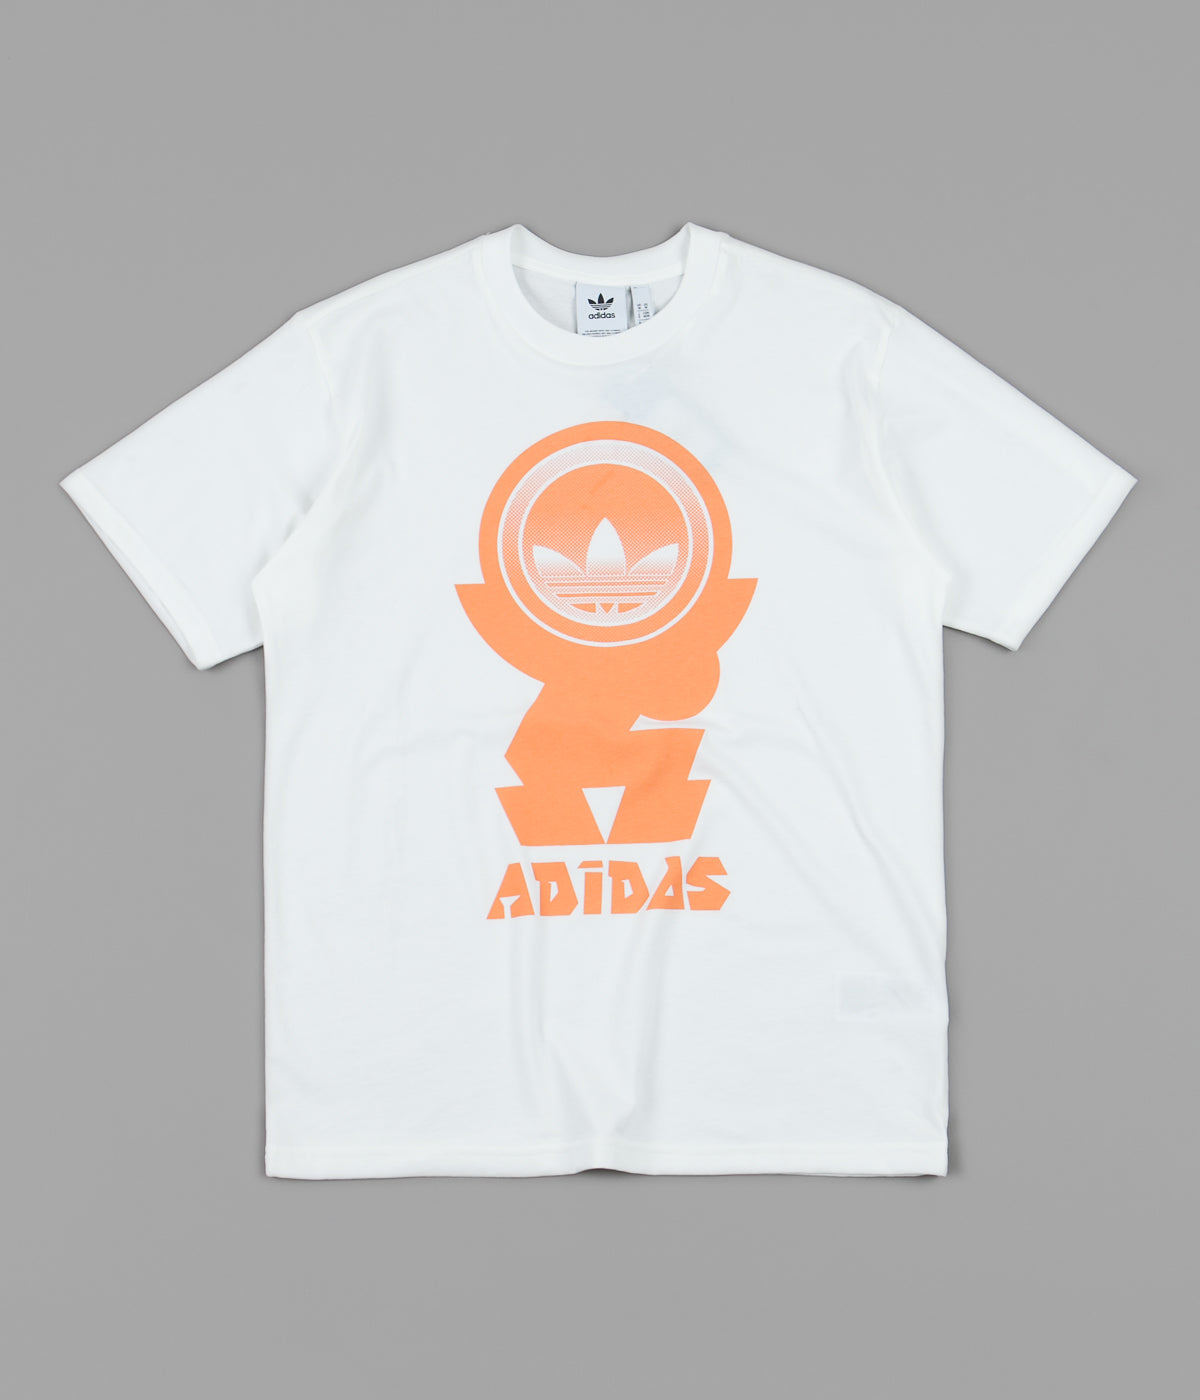 Adidas Forsut T-Shirt - Off White / Amber